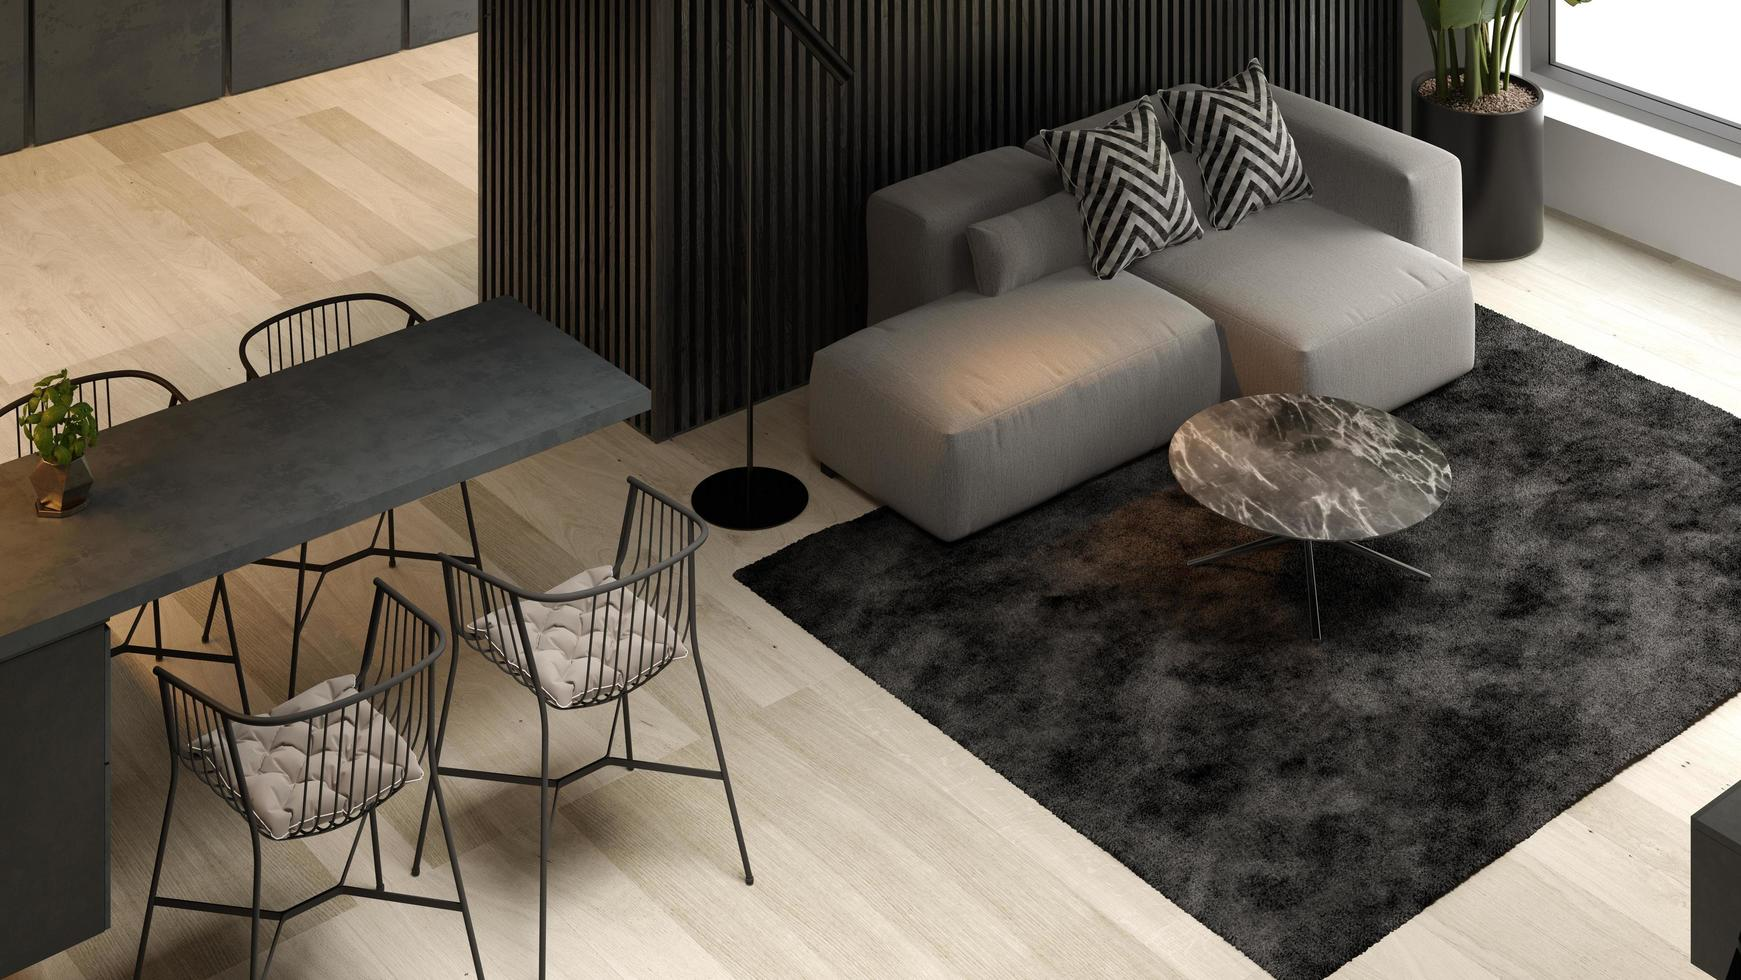 Angled view of a black minimalist interior of a modern home in 3D rendering photo